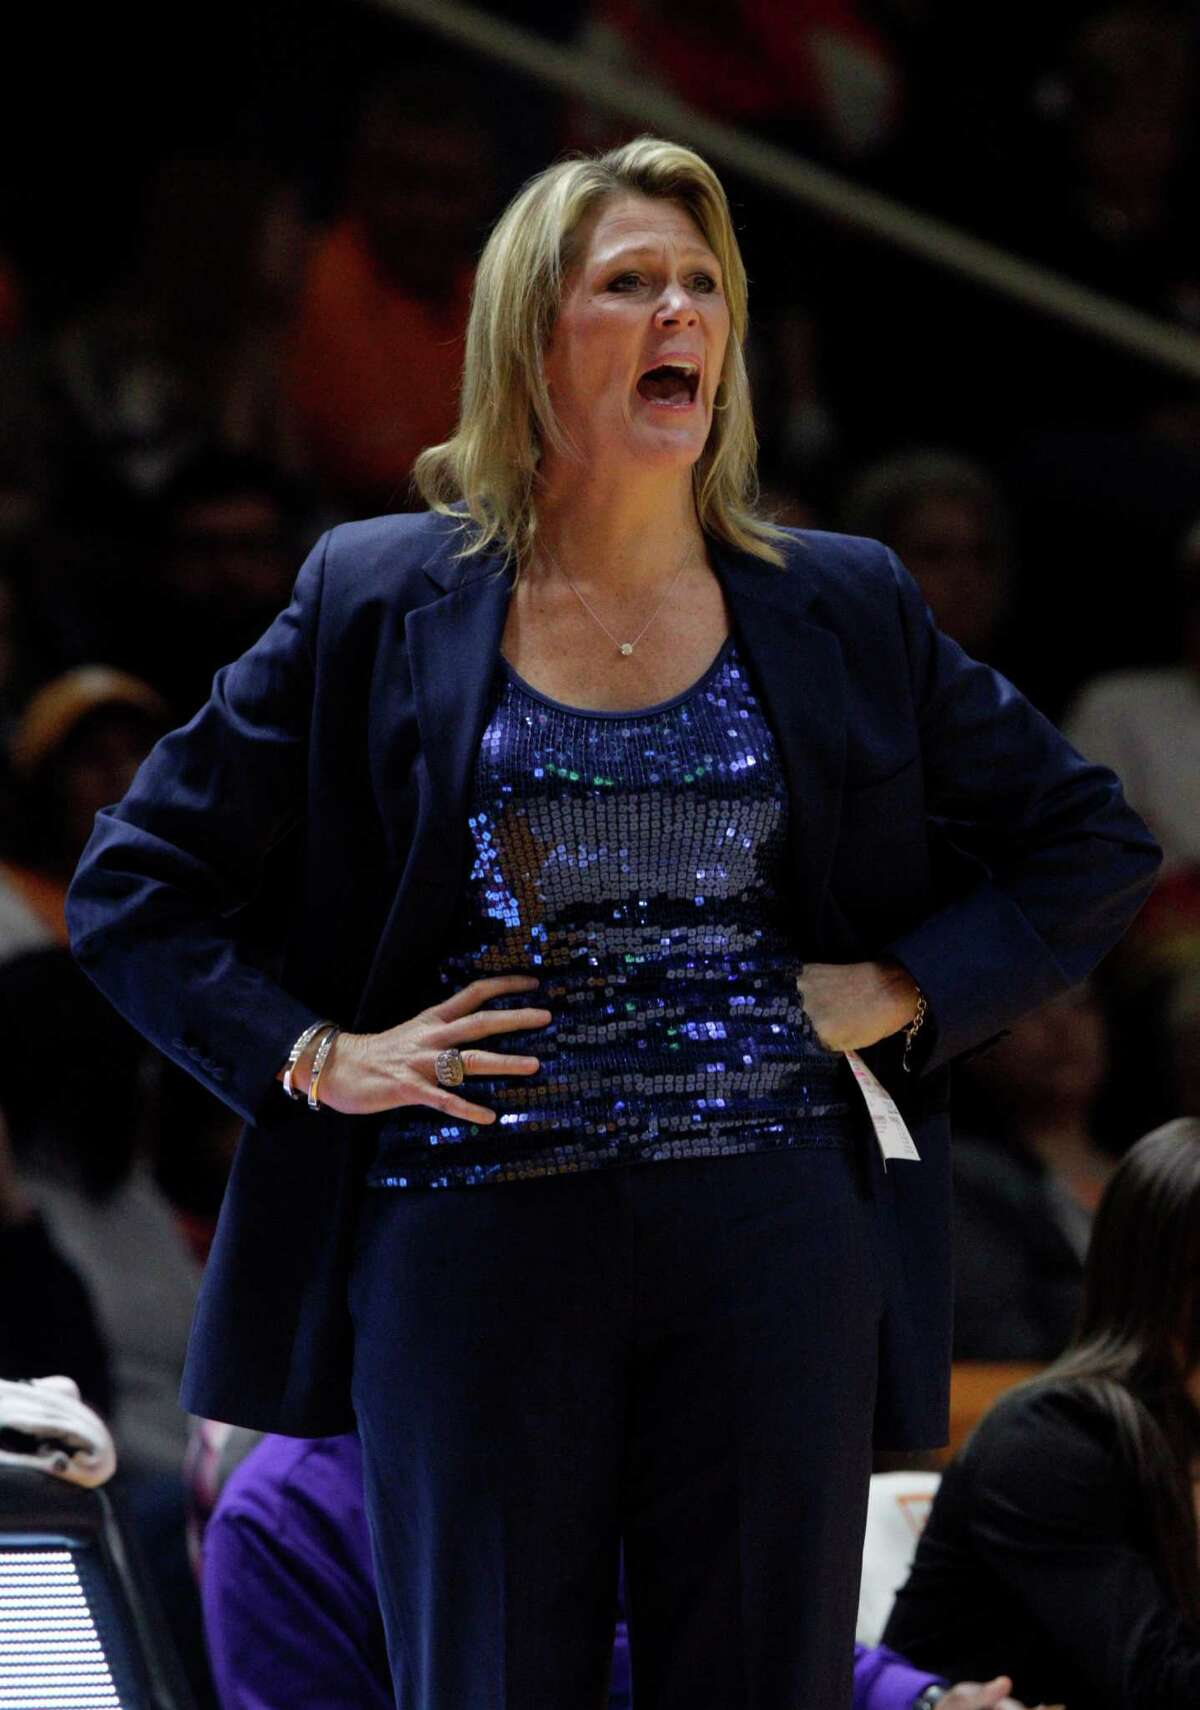 Albany head coach Katie Abrahamson-Henderson yells to her team in the second first half of an NCAA college basketball game against Tennessee Friday, Nov. 27, 2015, in Knoxville, Tenn. Tennessee won 63-55. (AP Photo/Wade Payne) ORG XMIT: TNWP109